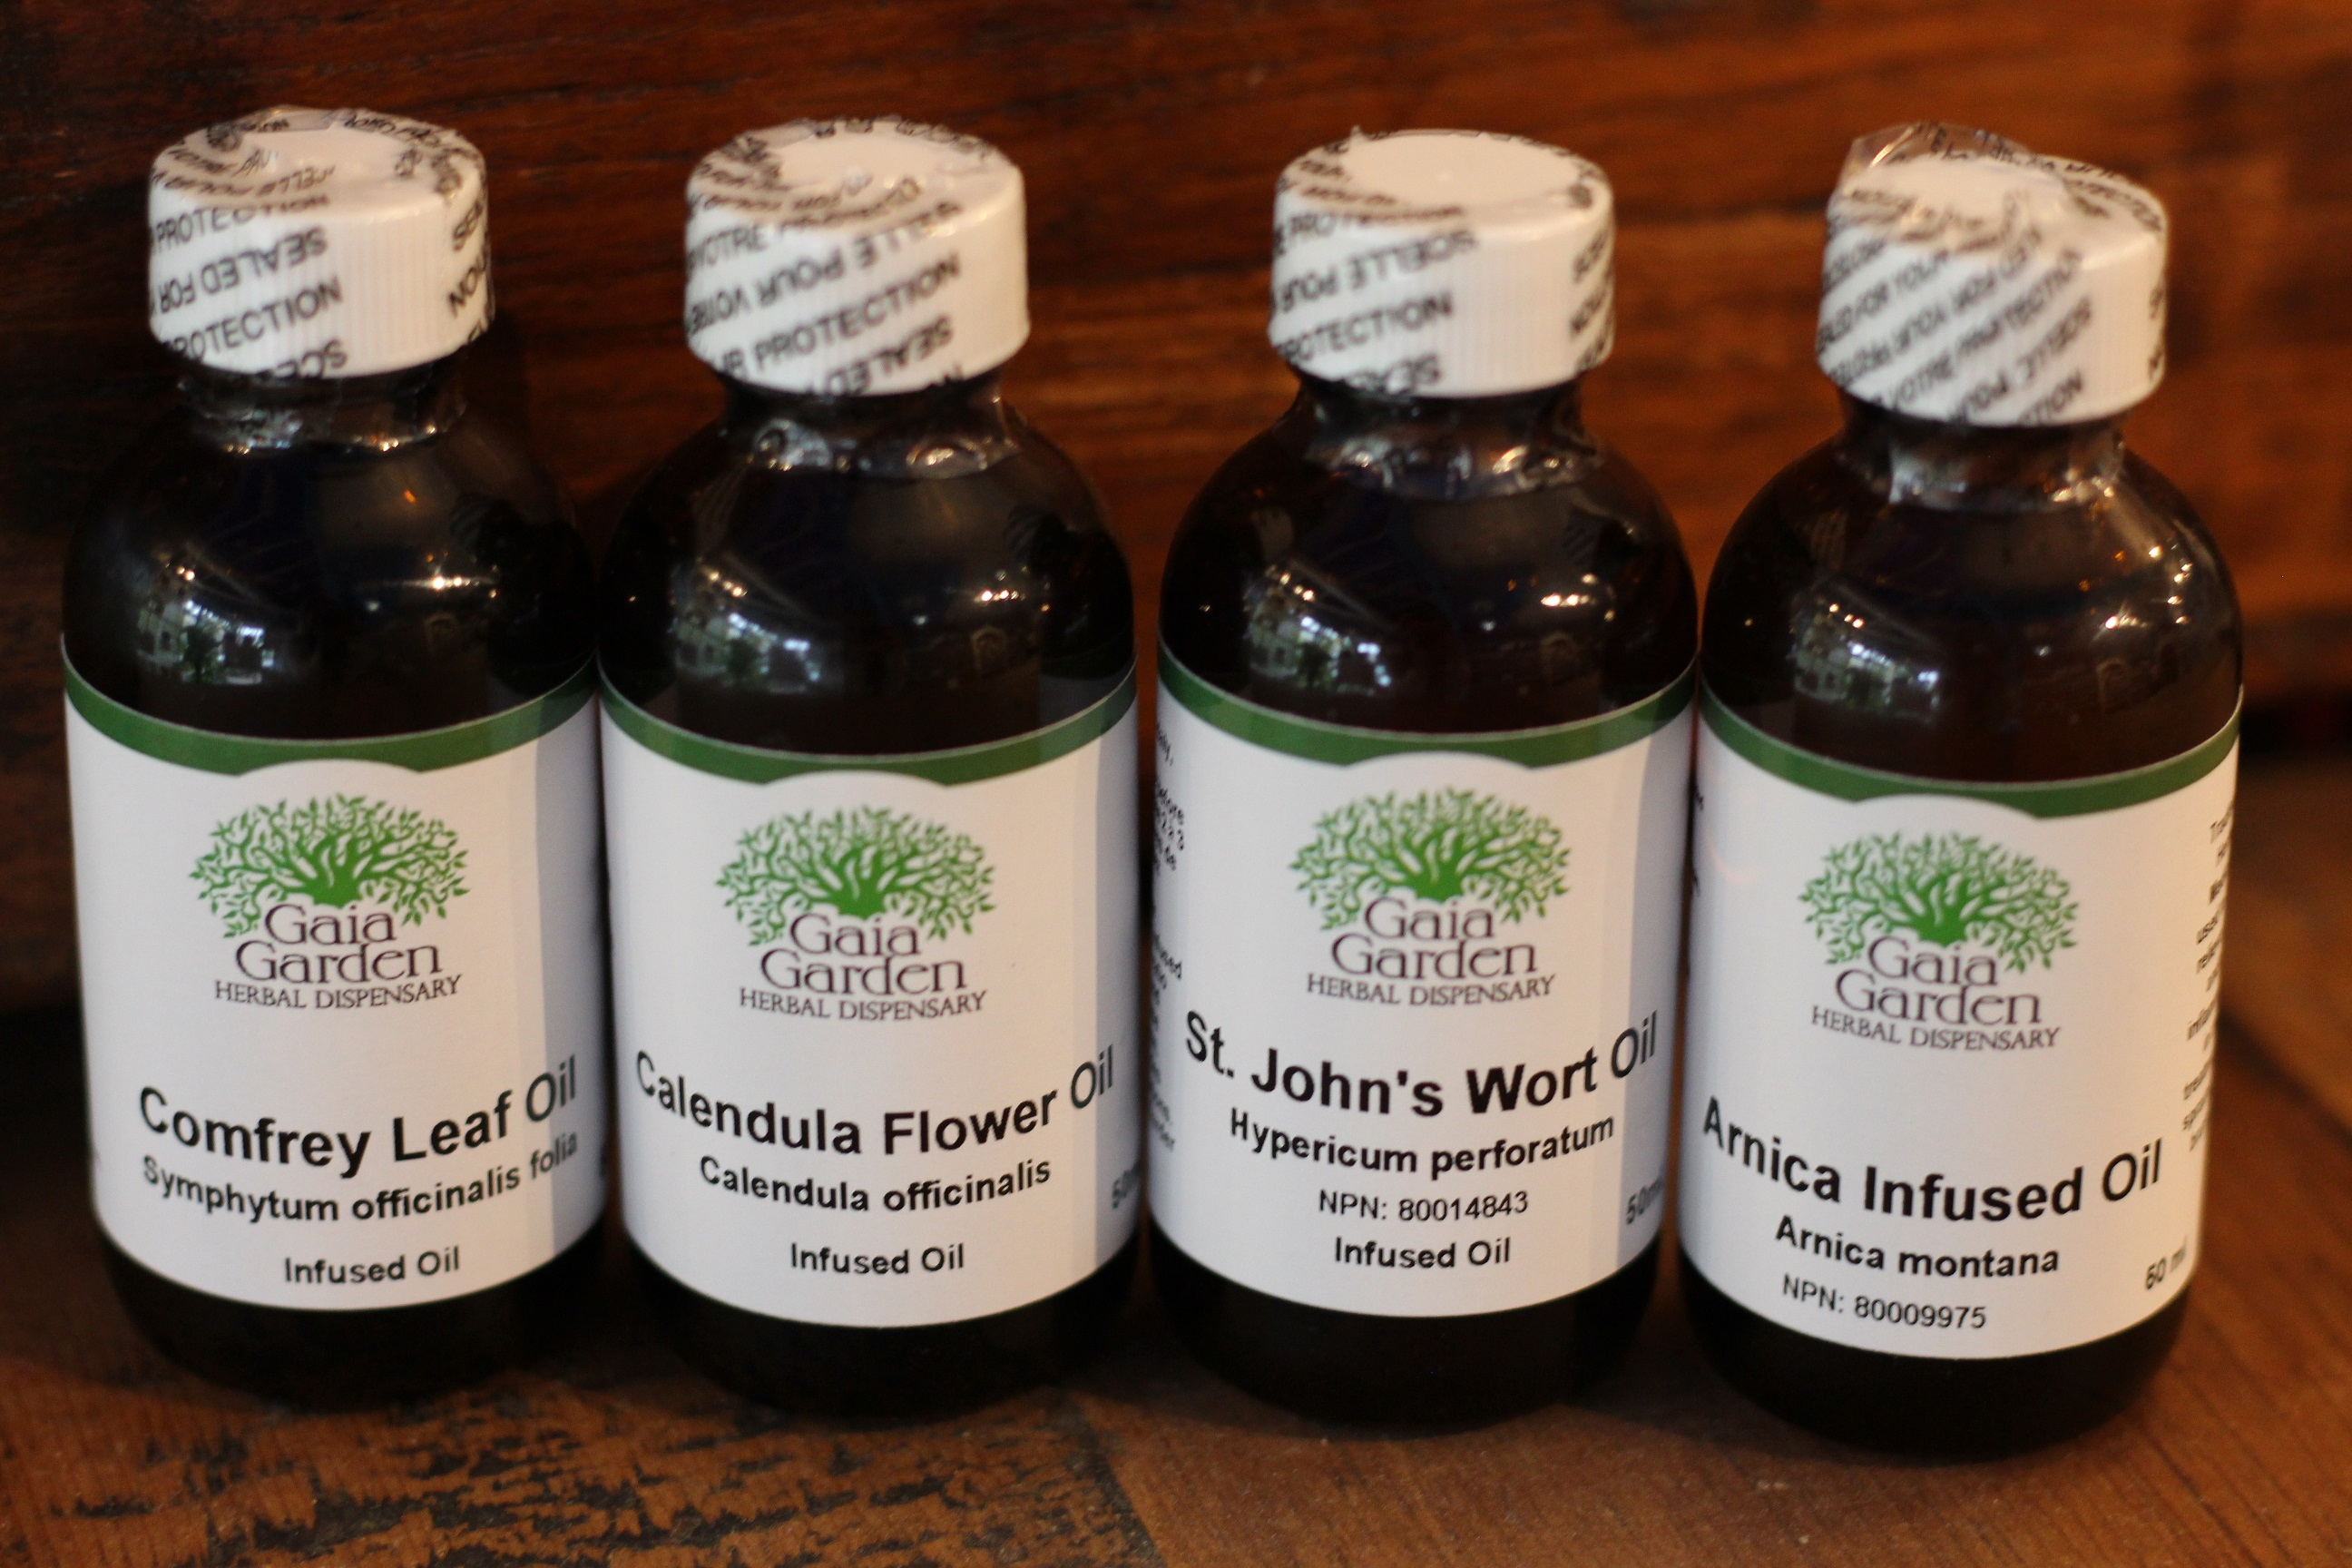 St. John's Wort (Hypericum) - Infused Oil